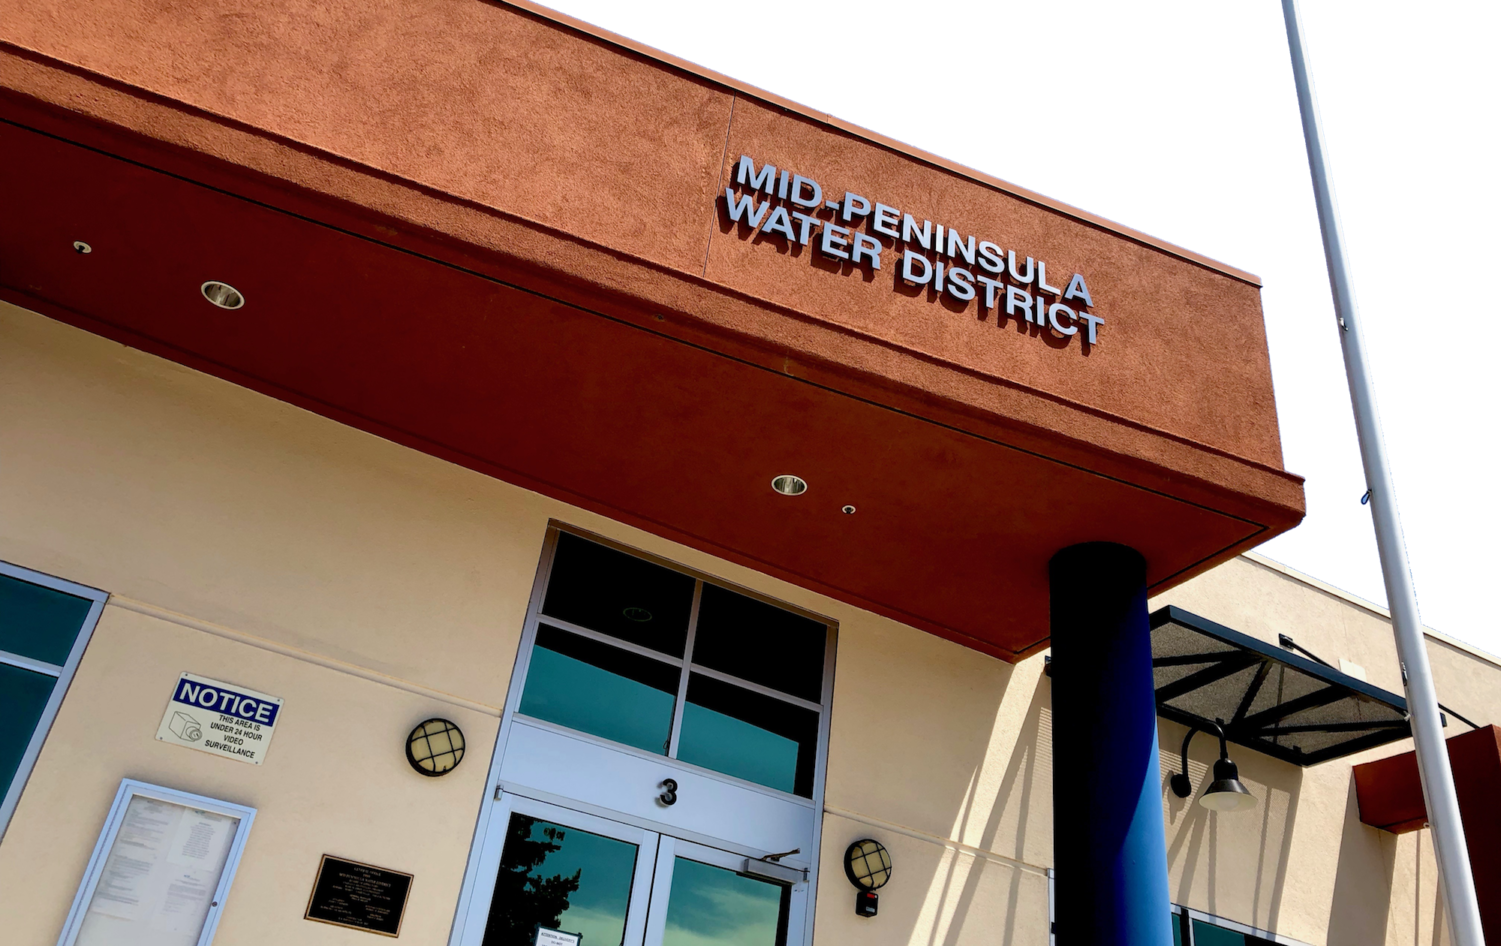 The Mid-Peninsula Water District headquarters, located at 3 Dairy Lane in Belmont. The Board of Directors meets here at 6:30 PM on the fourth Thursday of every month unless otherwise noted.